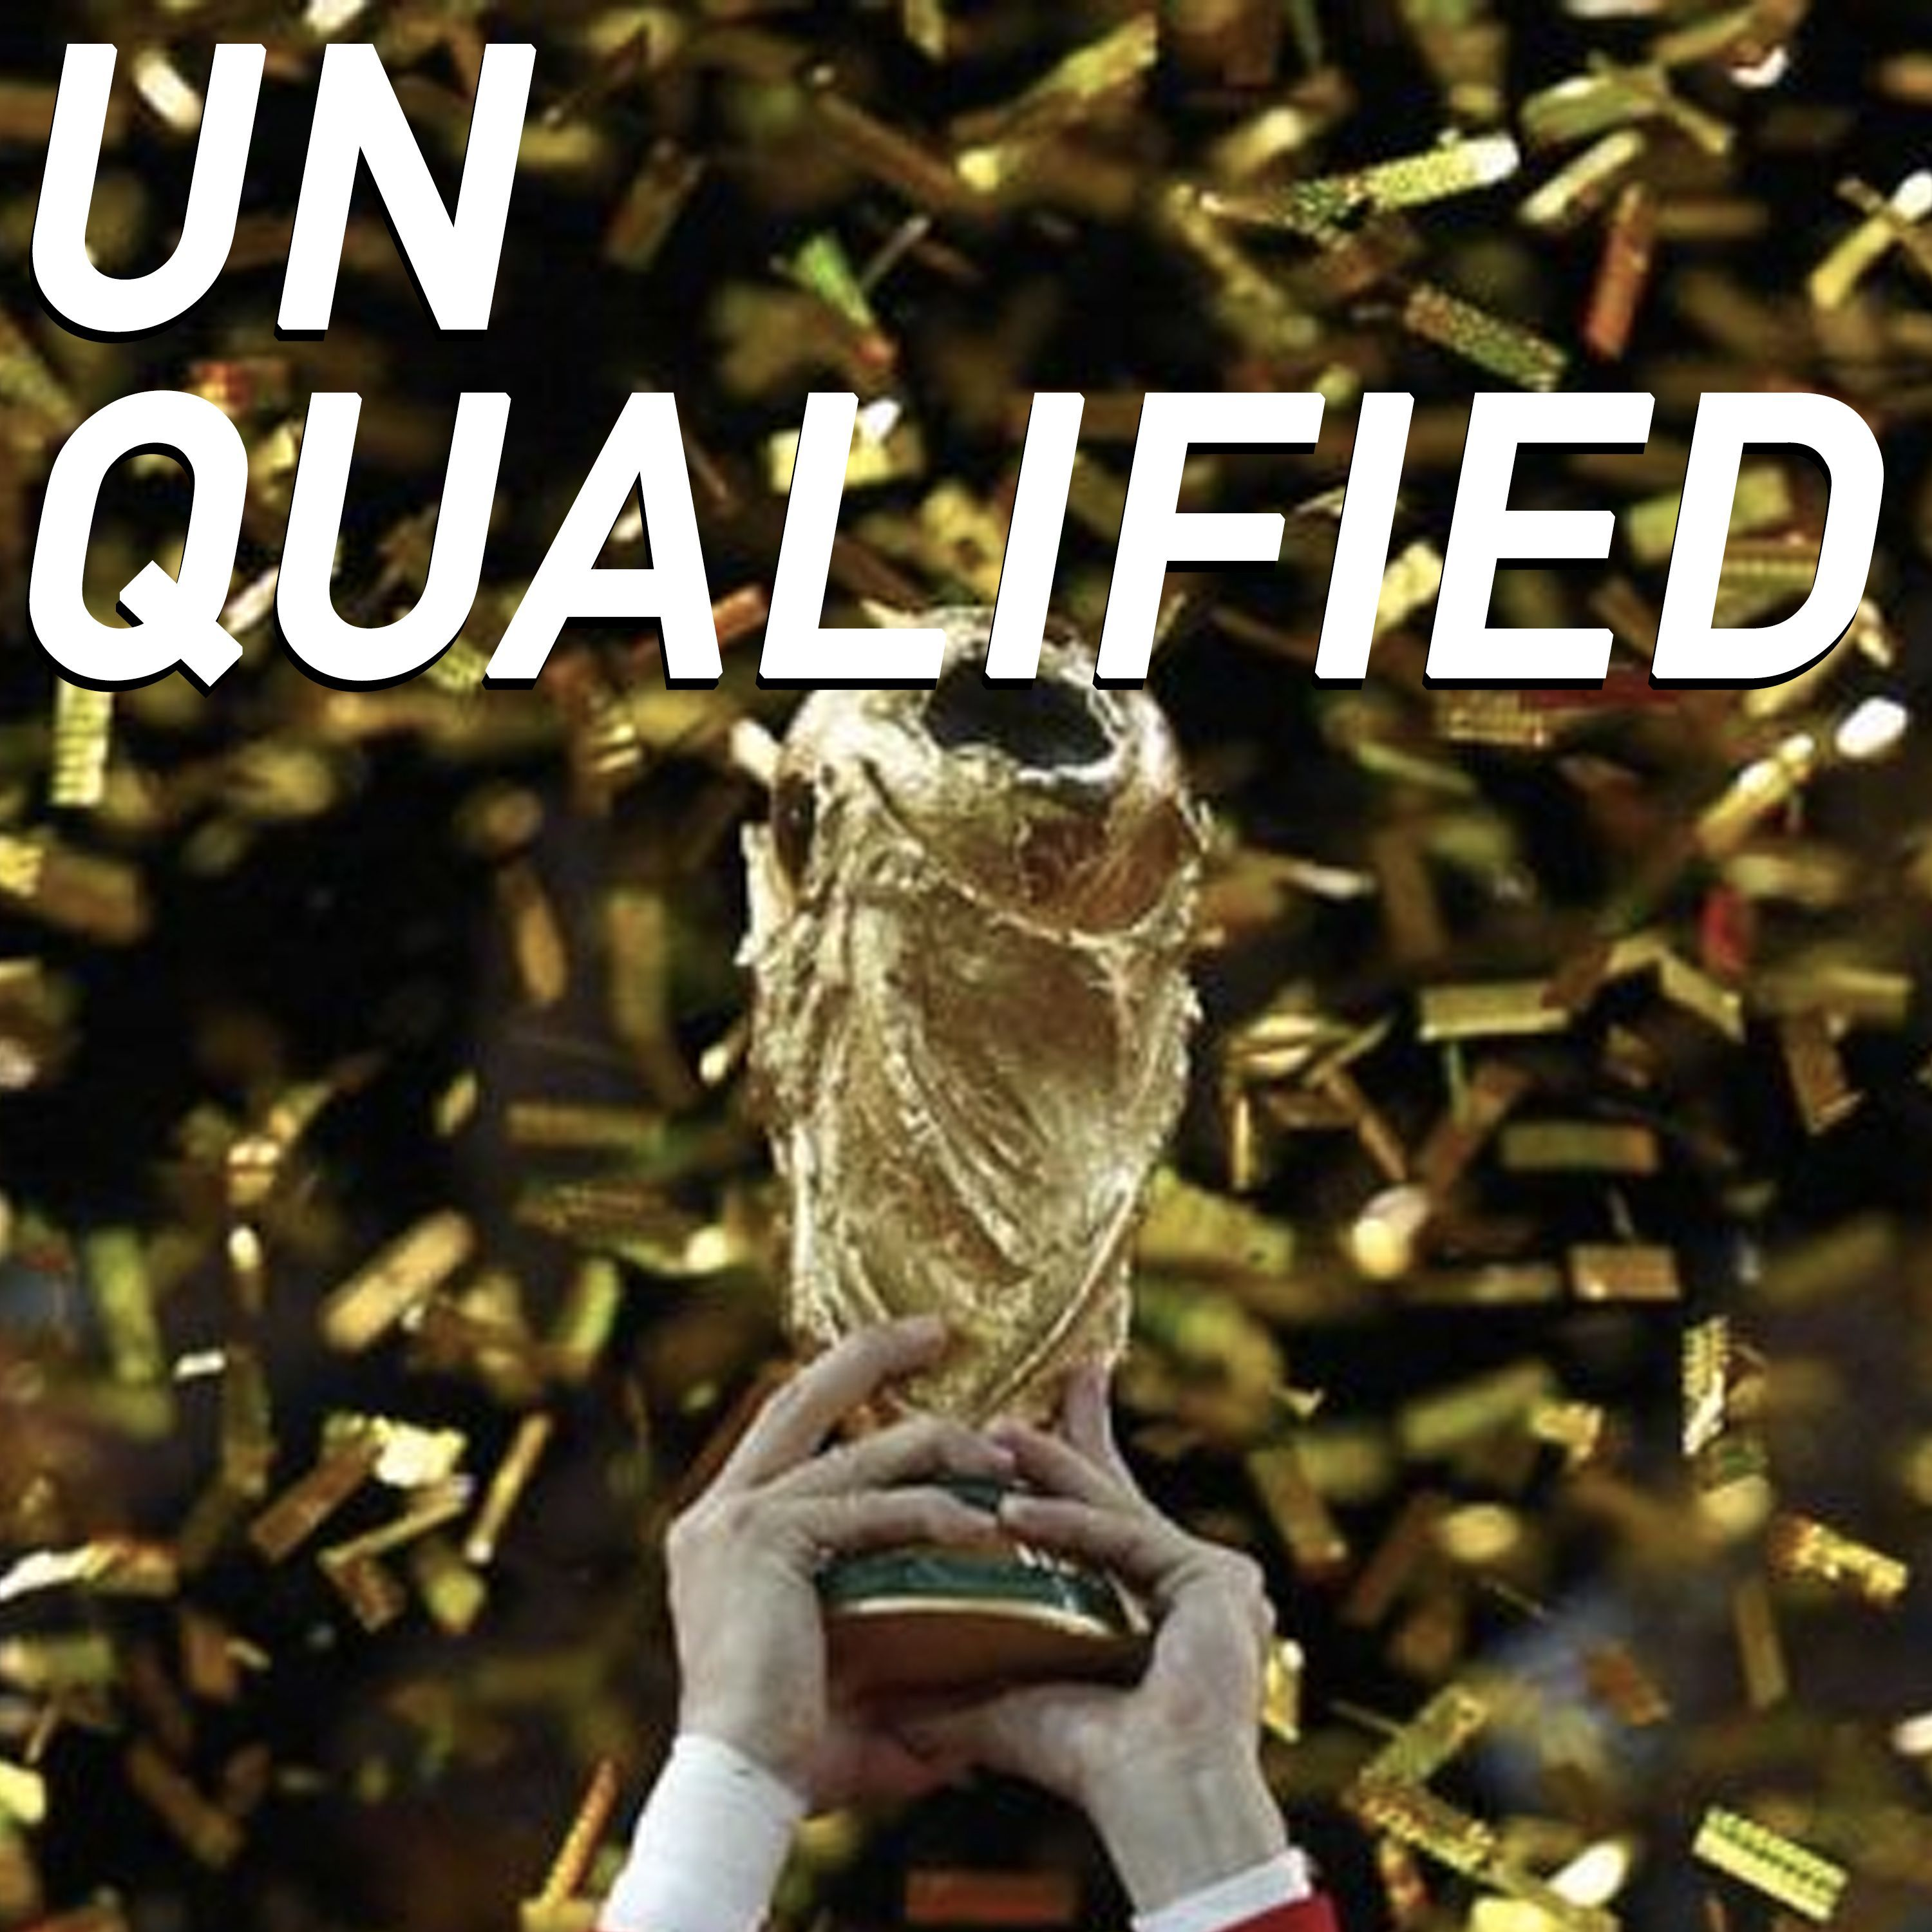 Unqualified: An American Soccer Podcast - Episode 5